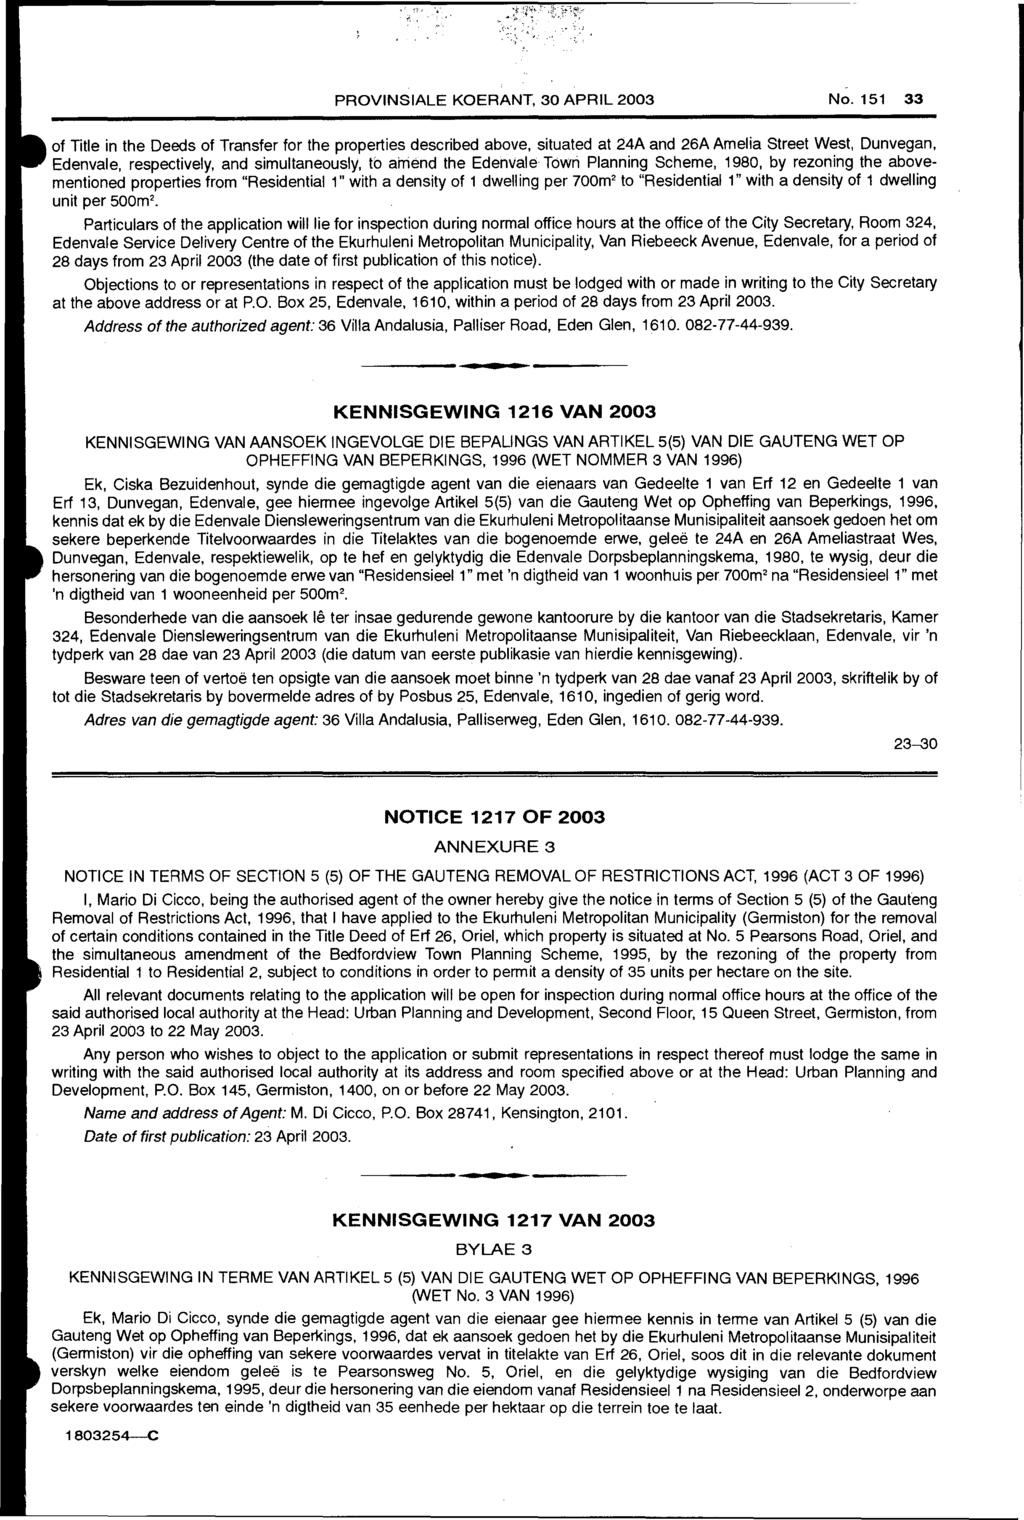 i.' PROVINSIALE KOERANT, 30 APRIL 2003 No. 151 33 of Title in the Deeds of Transfer for the properties described above.